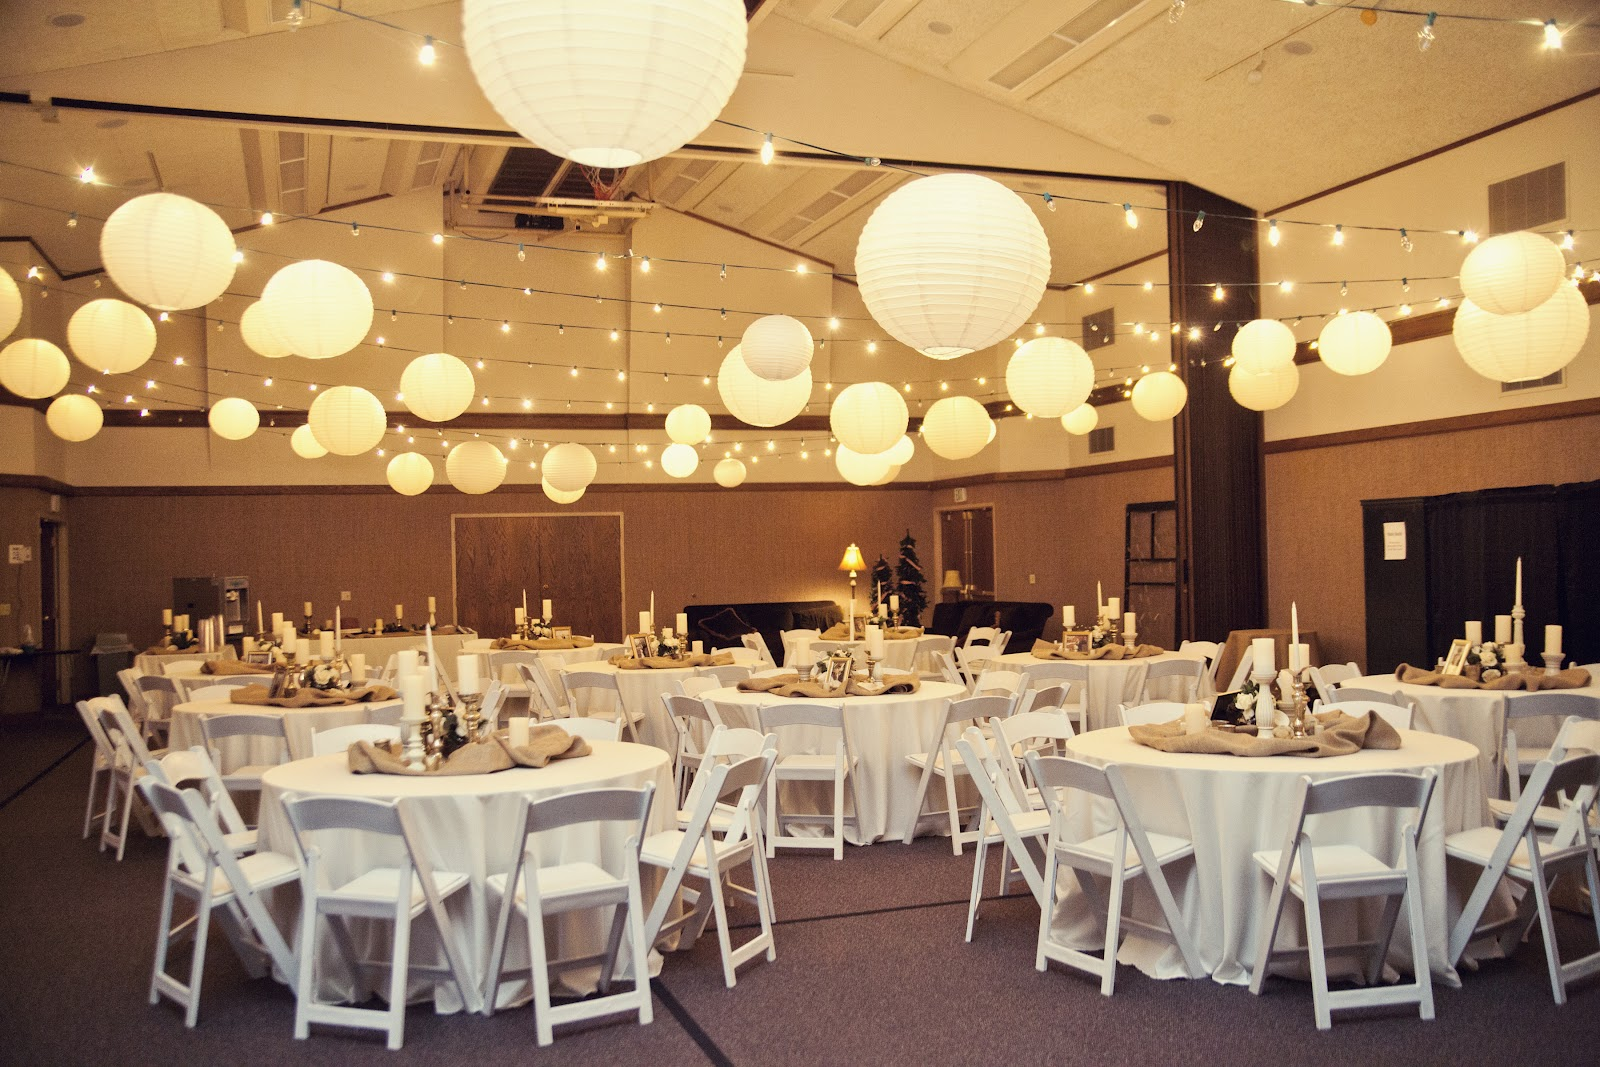 Beehive art salon wedding for Simple wedding decorations for reception